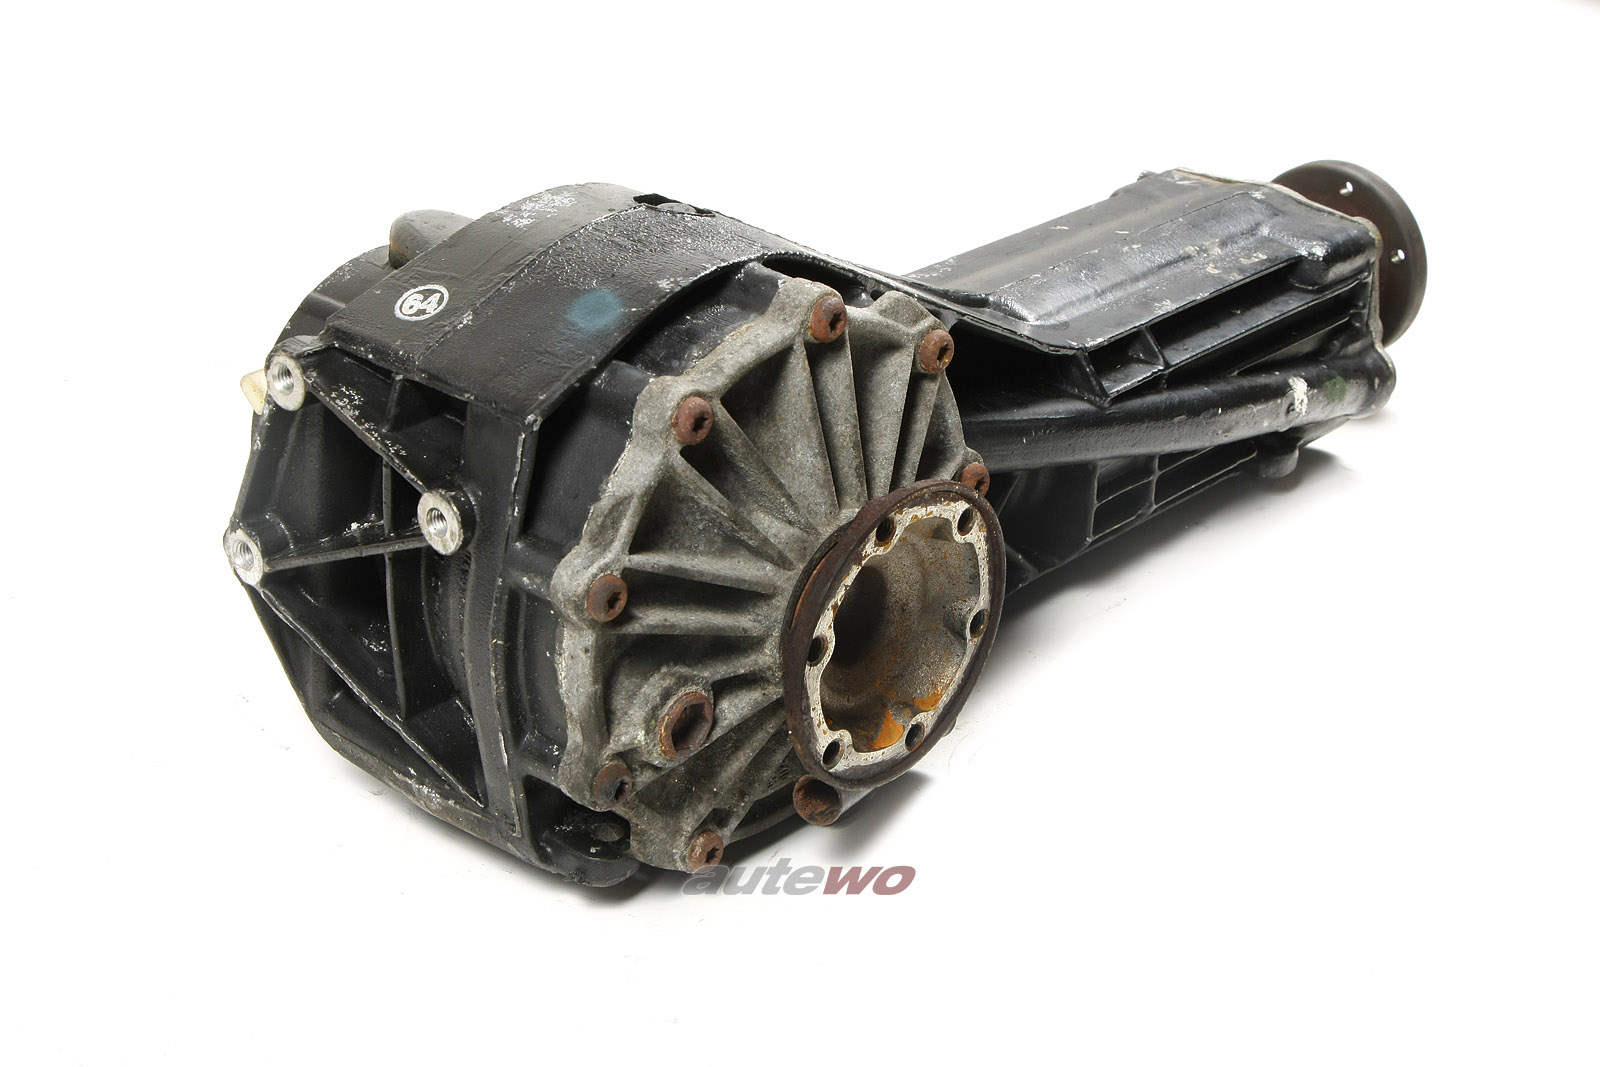 017500044C Audi 100/S4/S6 C4 2.2/2.8l Differential AET 18092